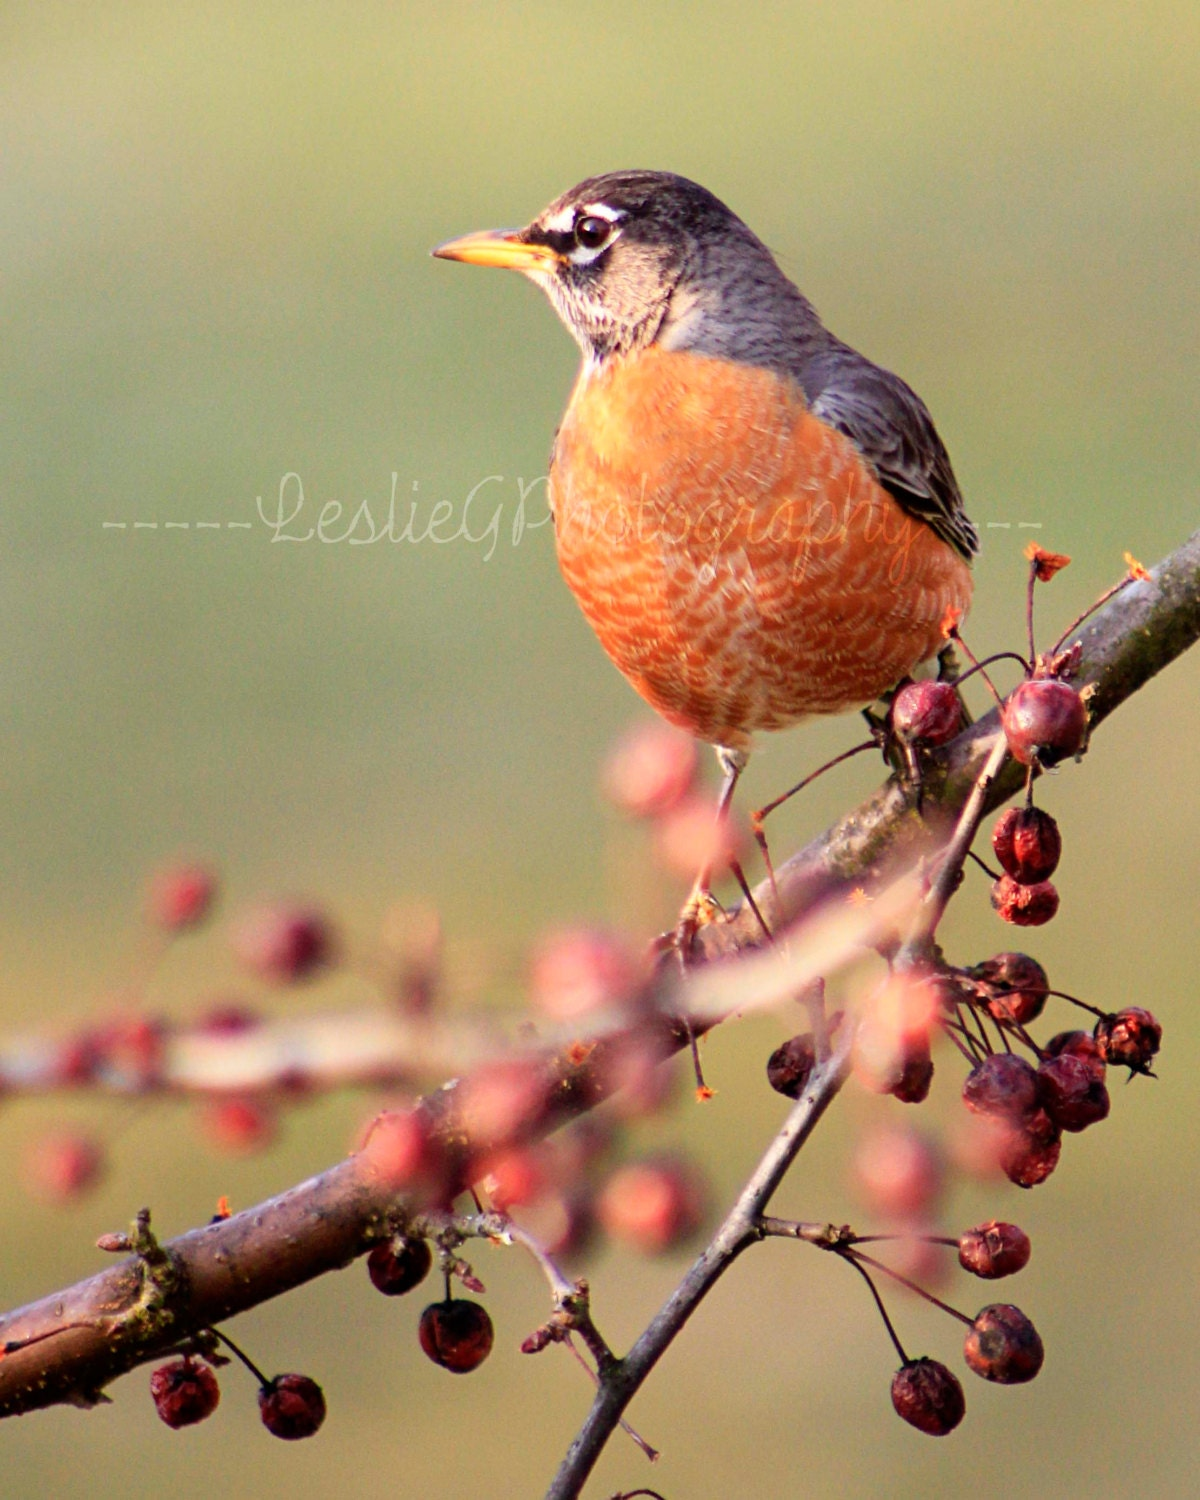 Spring Robin - Digital Photography - LeslieGPhotography